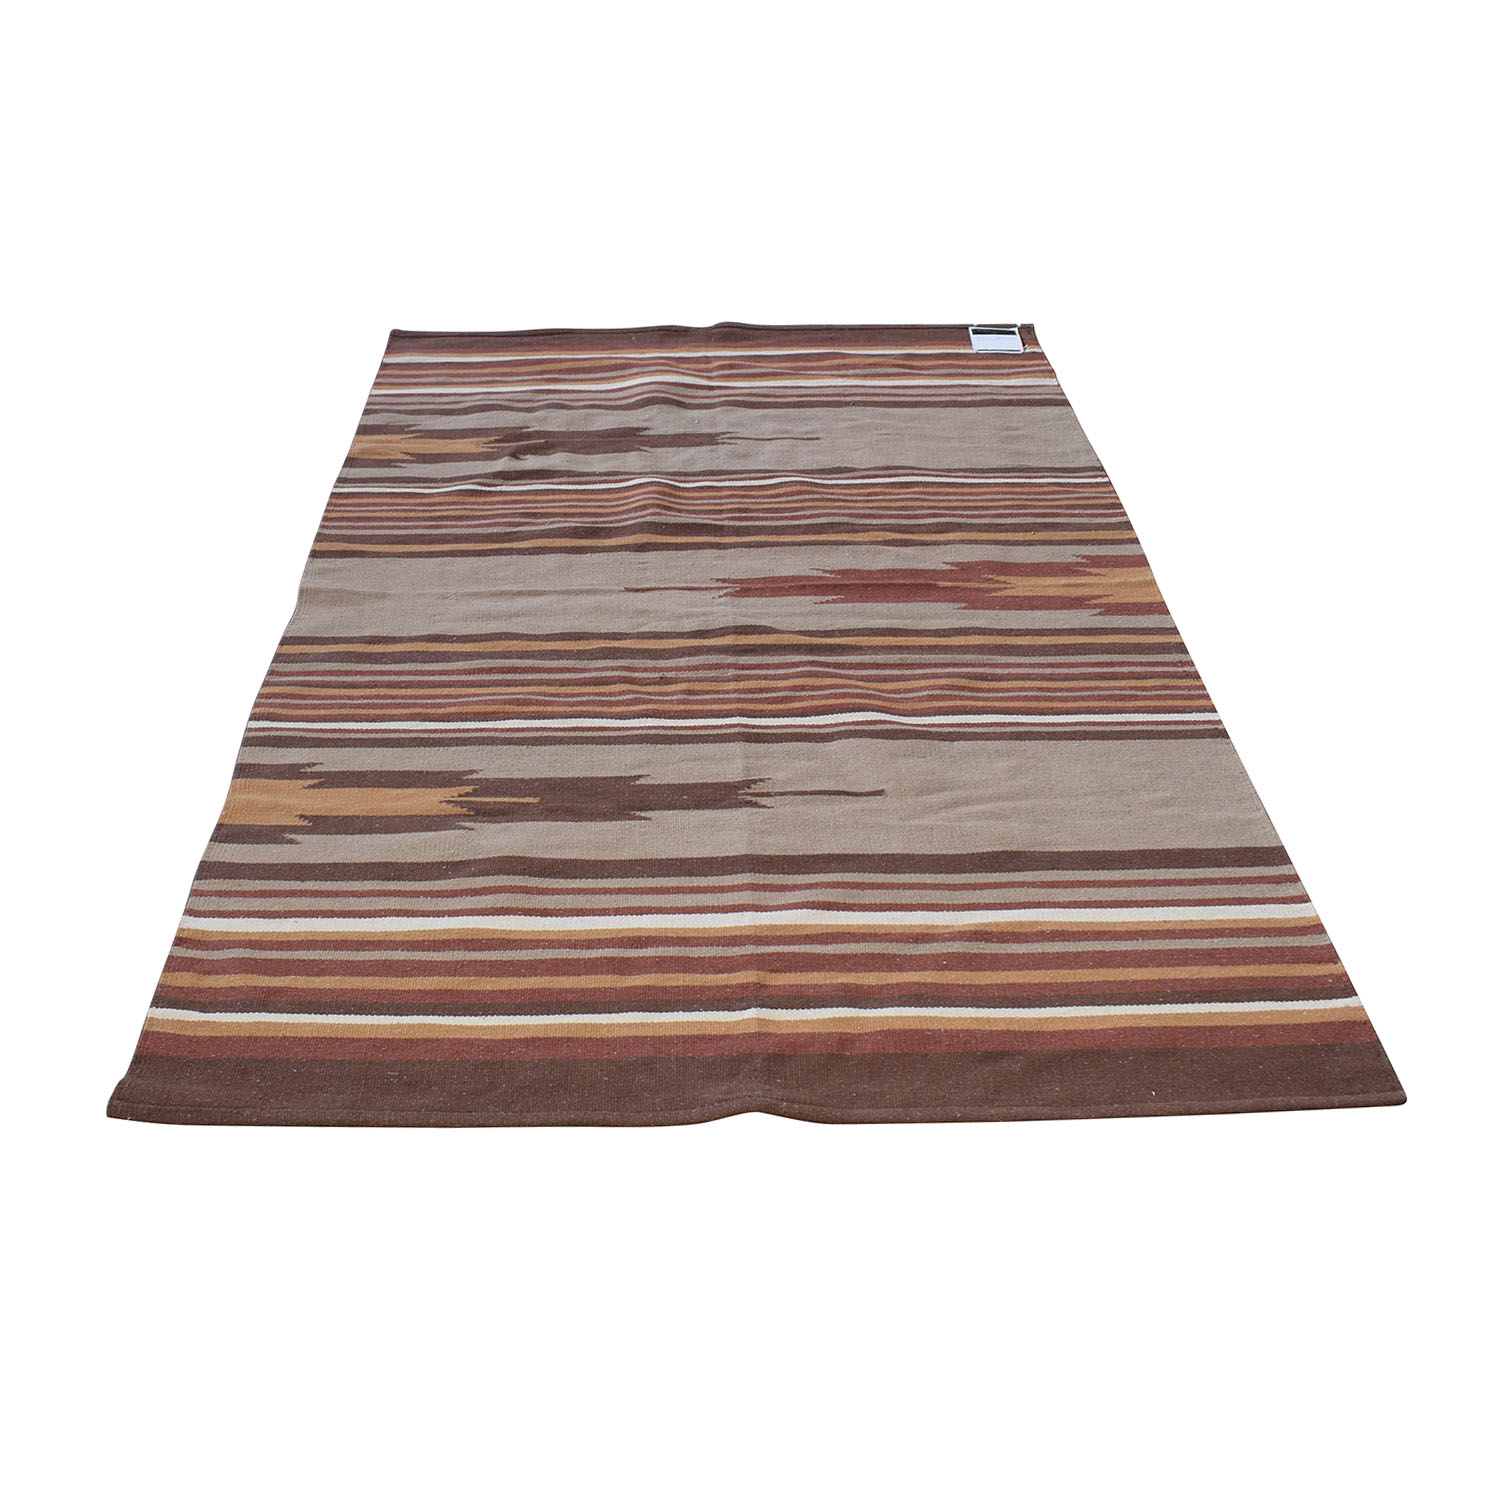 Obeetee Obeetee Red Striped Dhurrie Weave Rug on sale